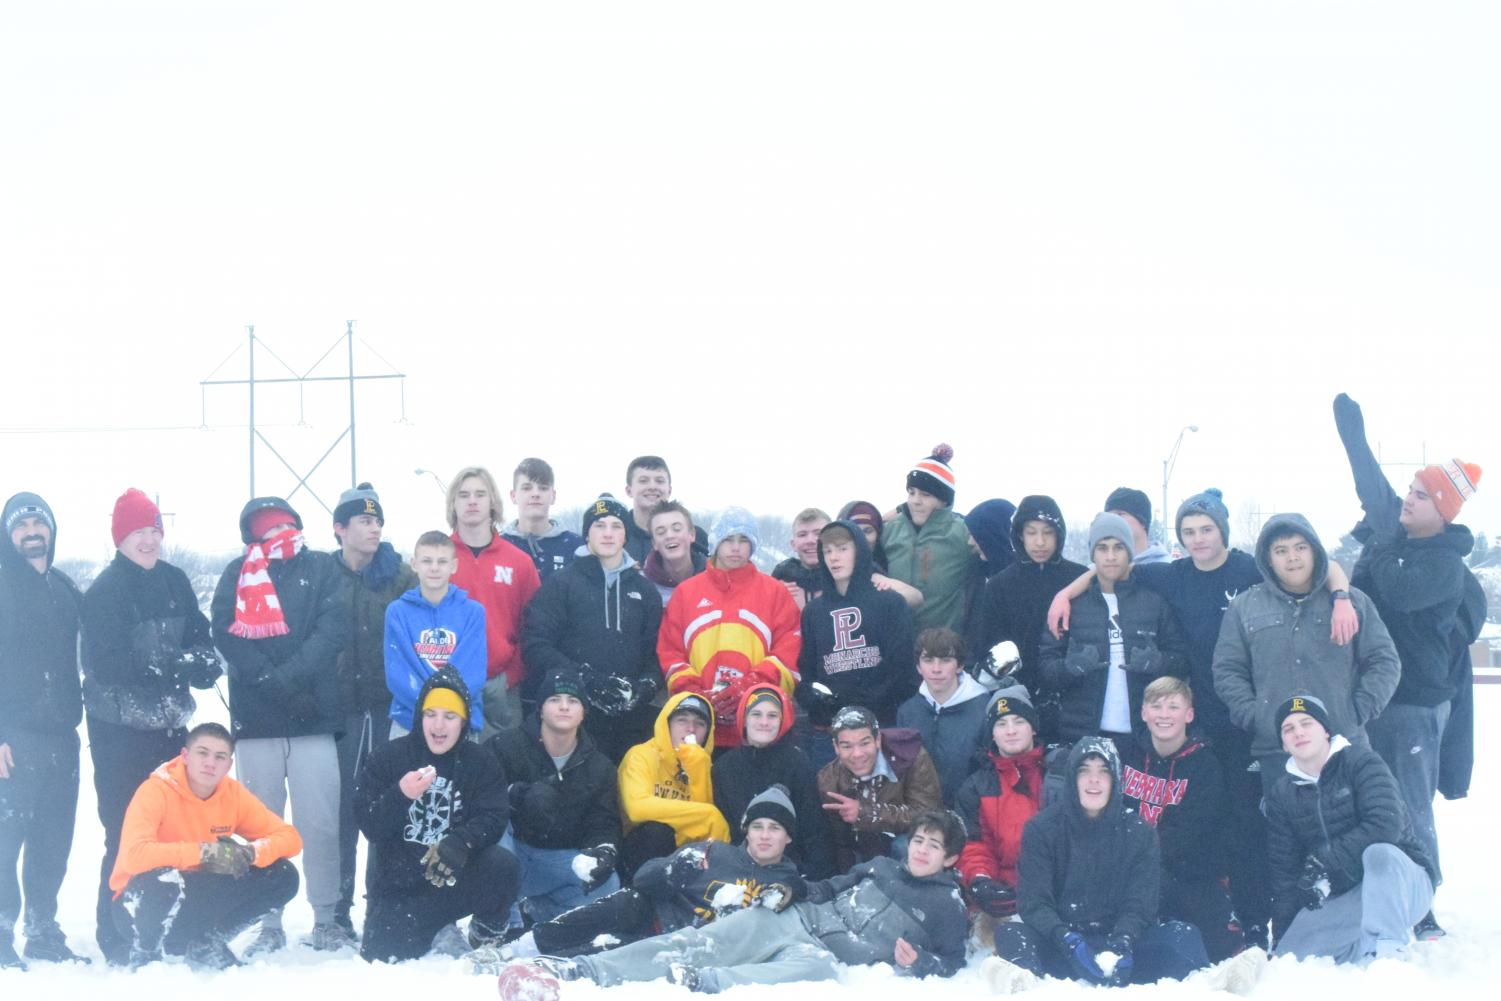 The wrestling team enjoys a fun bonding day in the snow.